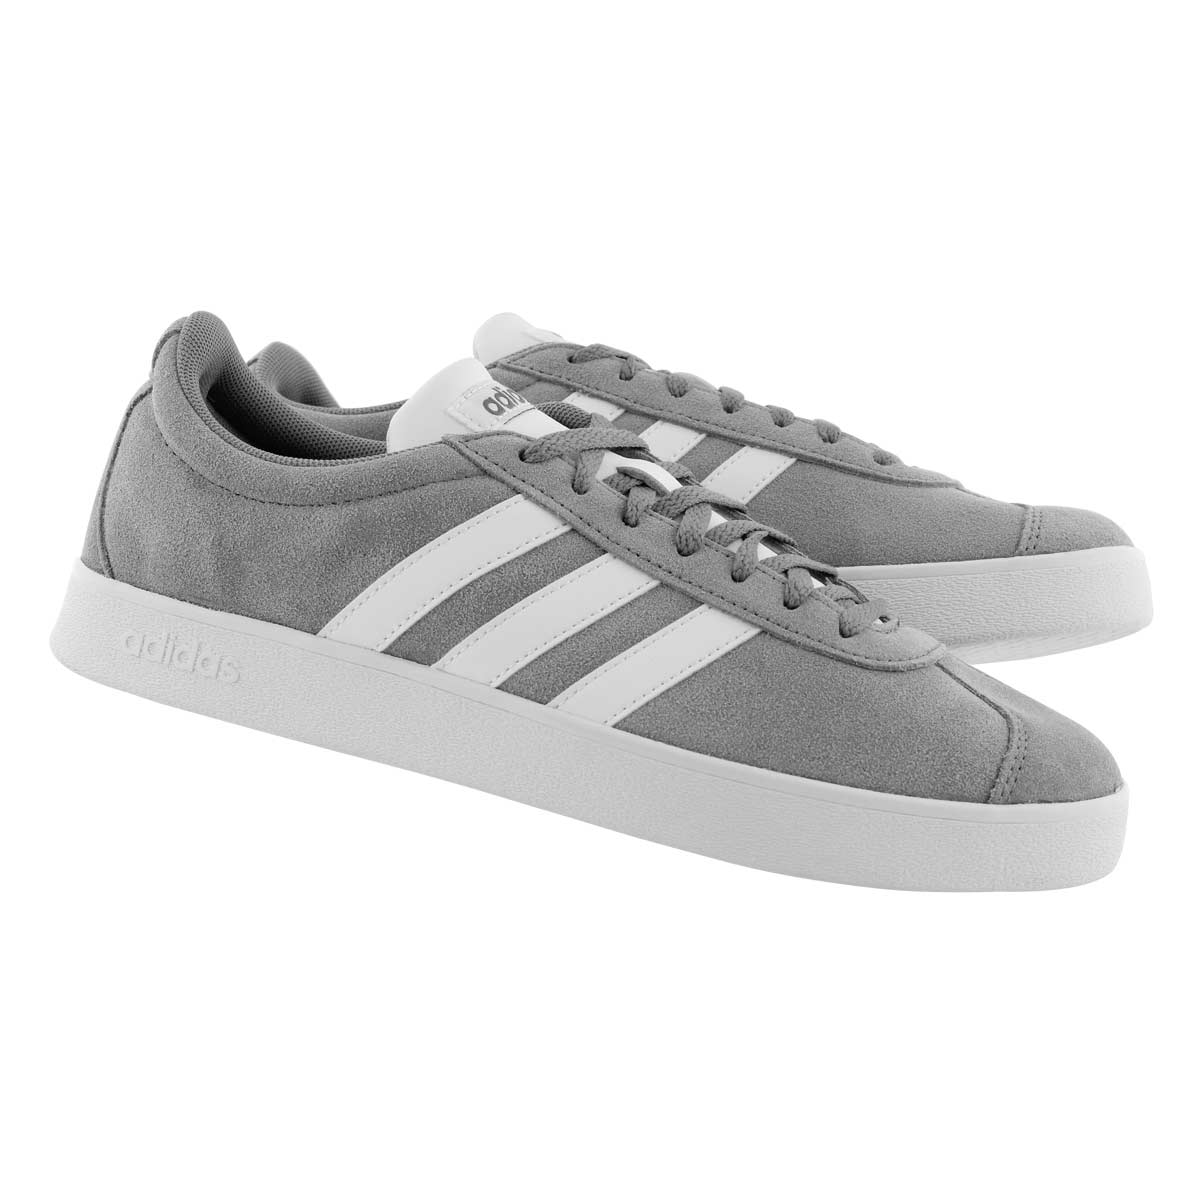 Mns VL Court 2.0 grey/white sneaker